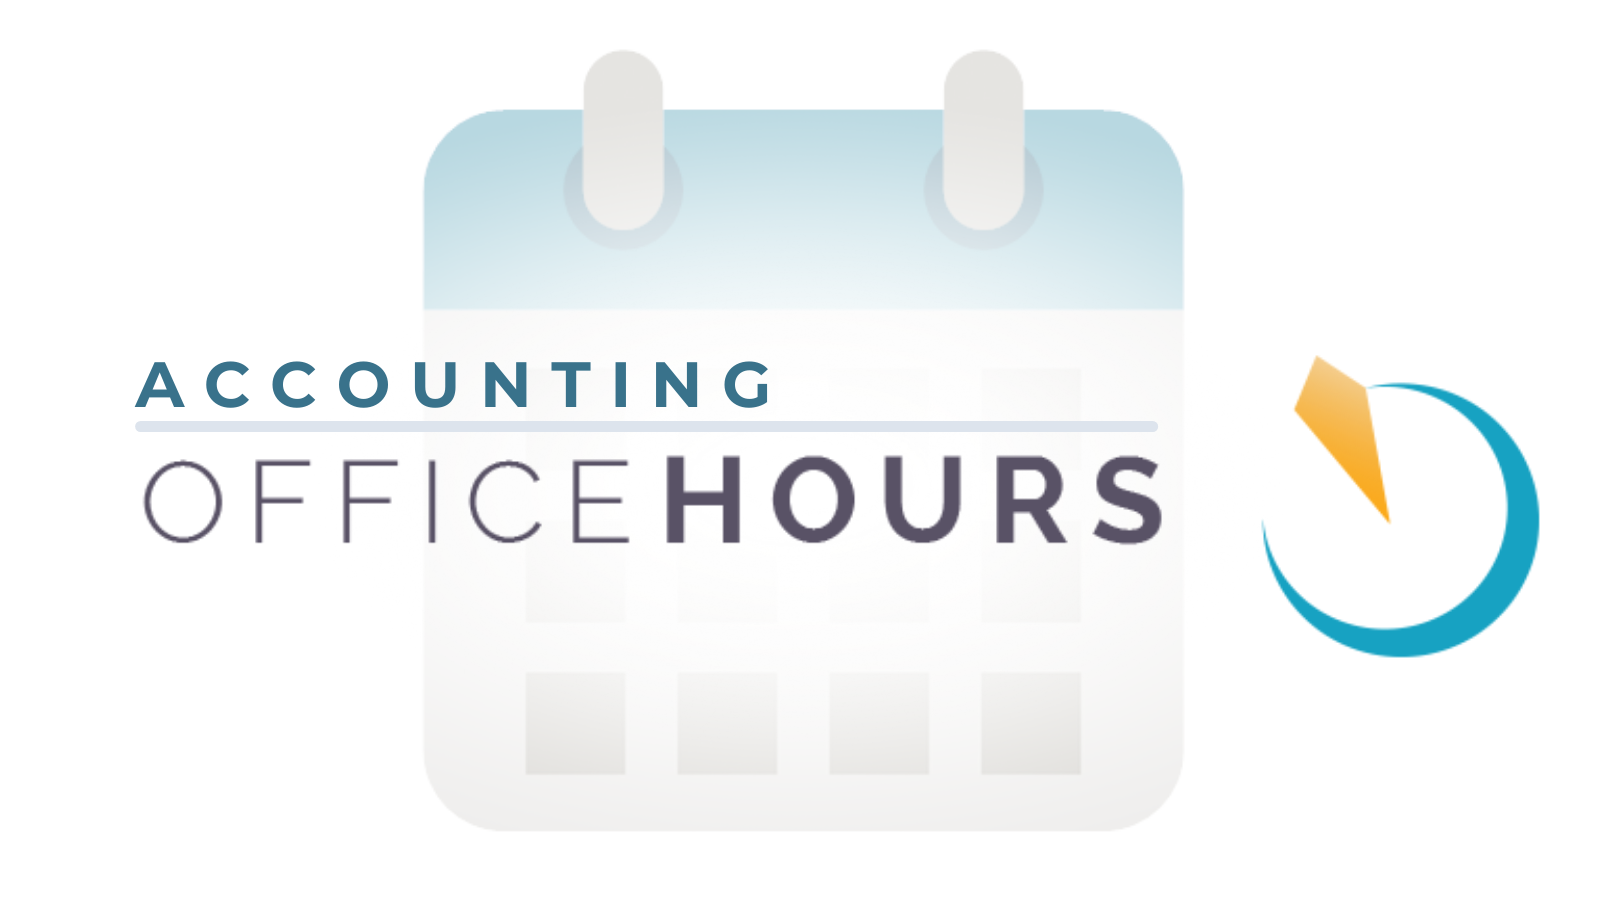 Connect San Diego Innovation Business RSM Accounting Office Hours Program Graphic 01